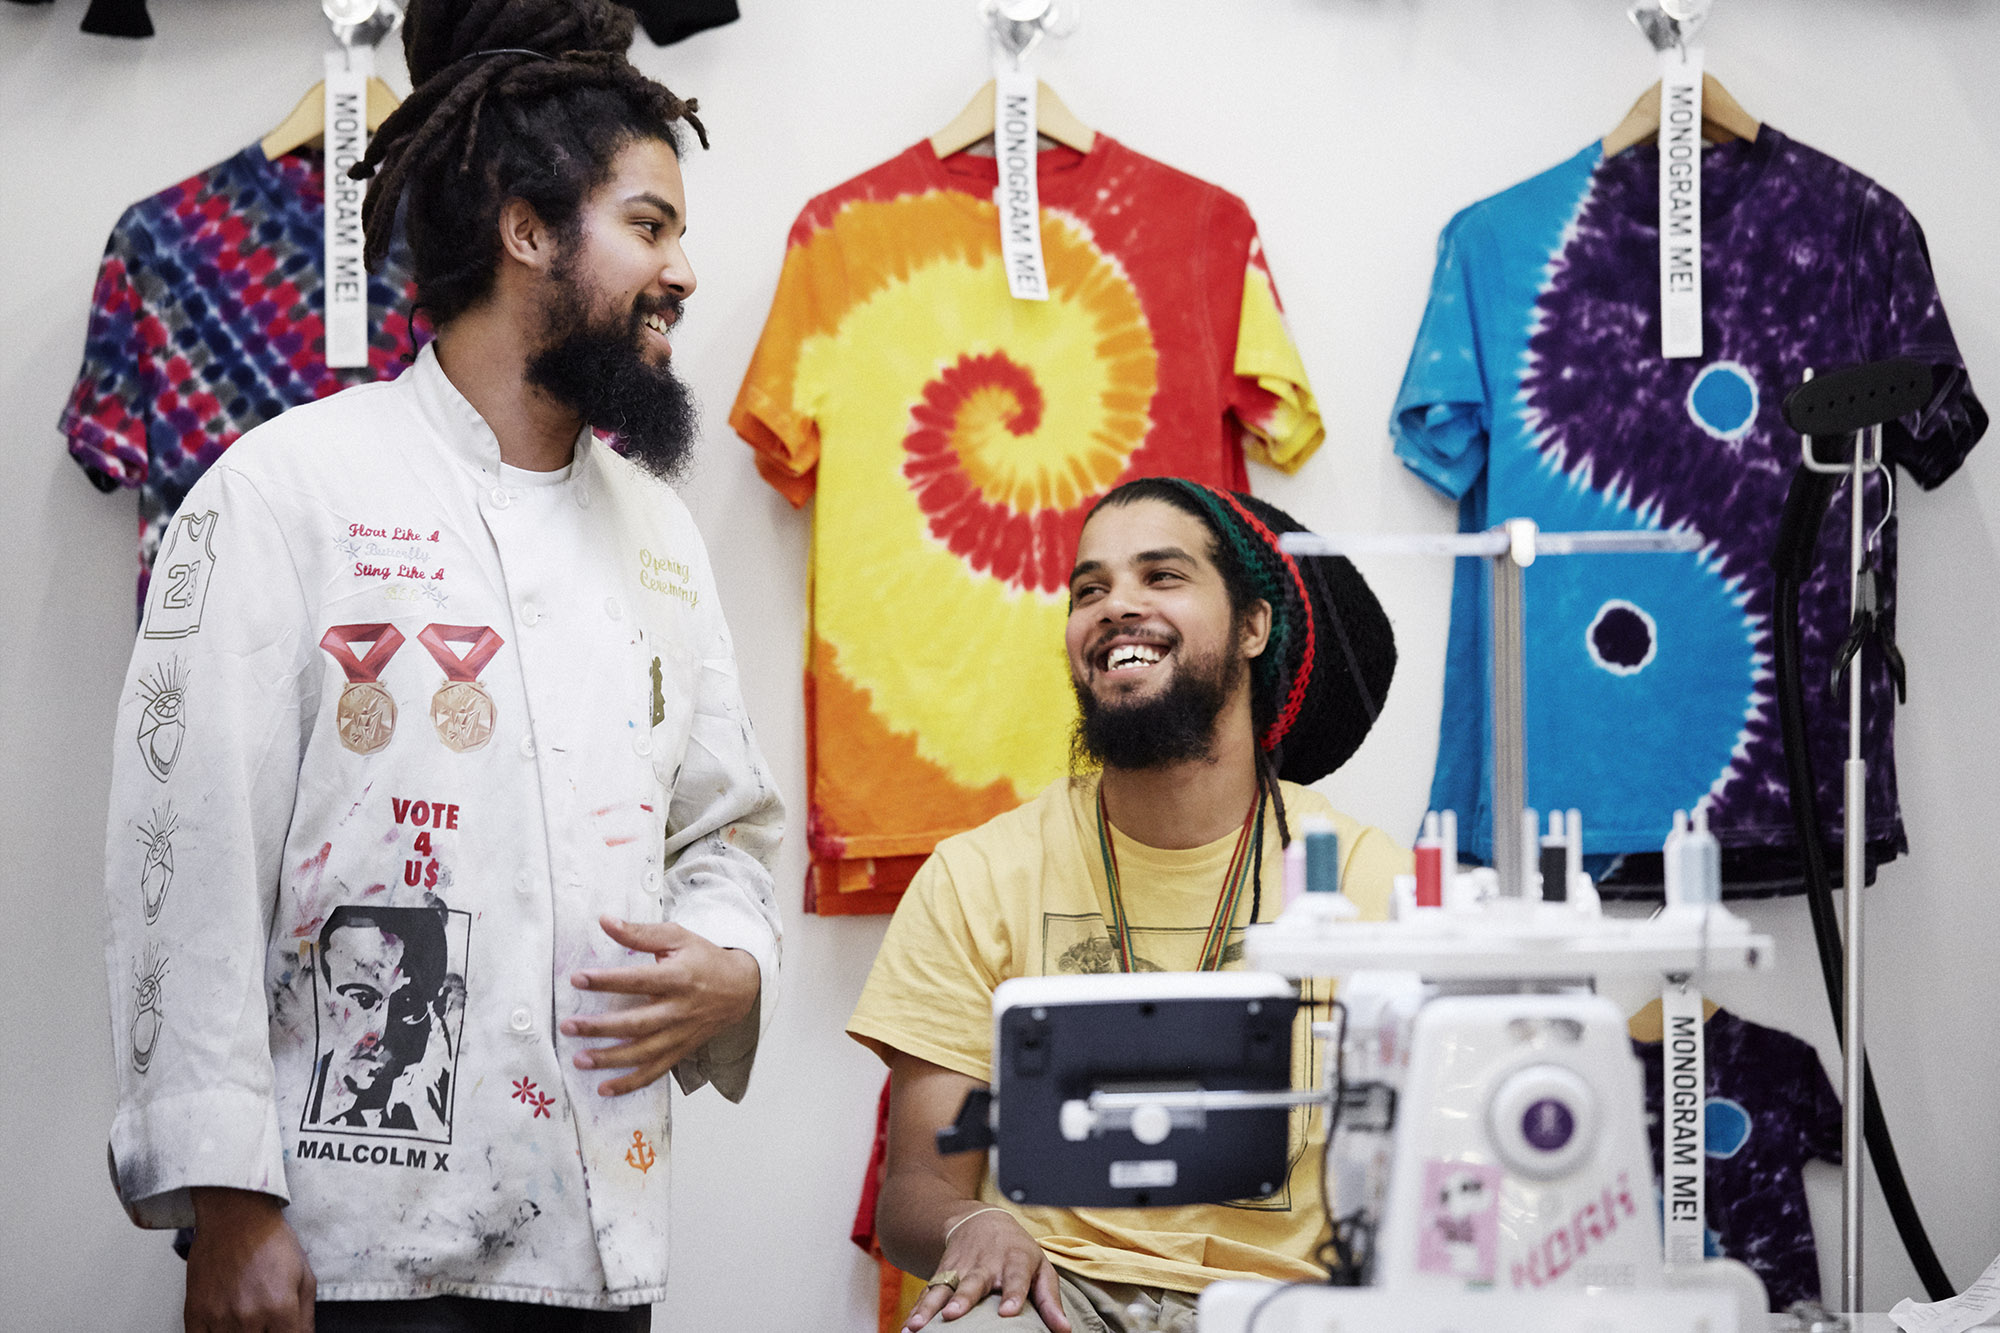 The Griggs Brothers, Chris and Clayton at their Embroidery space in Opening Ceremony.